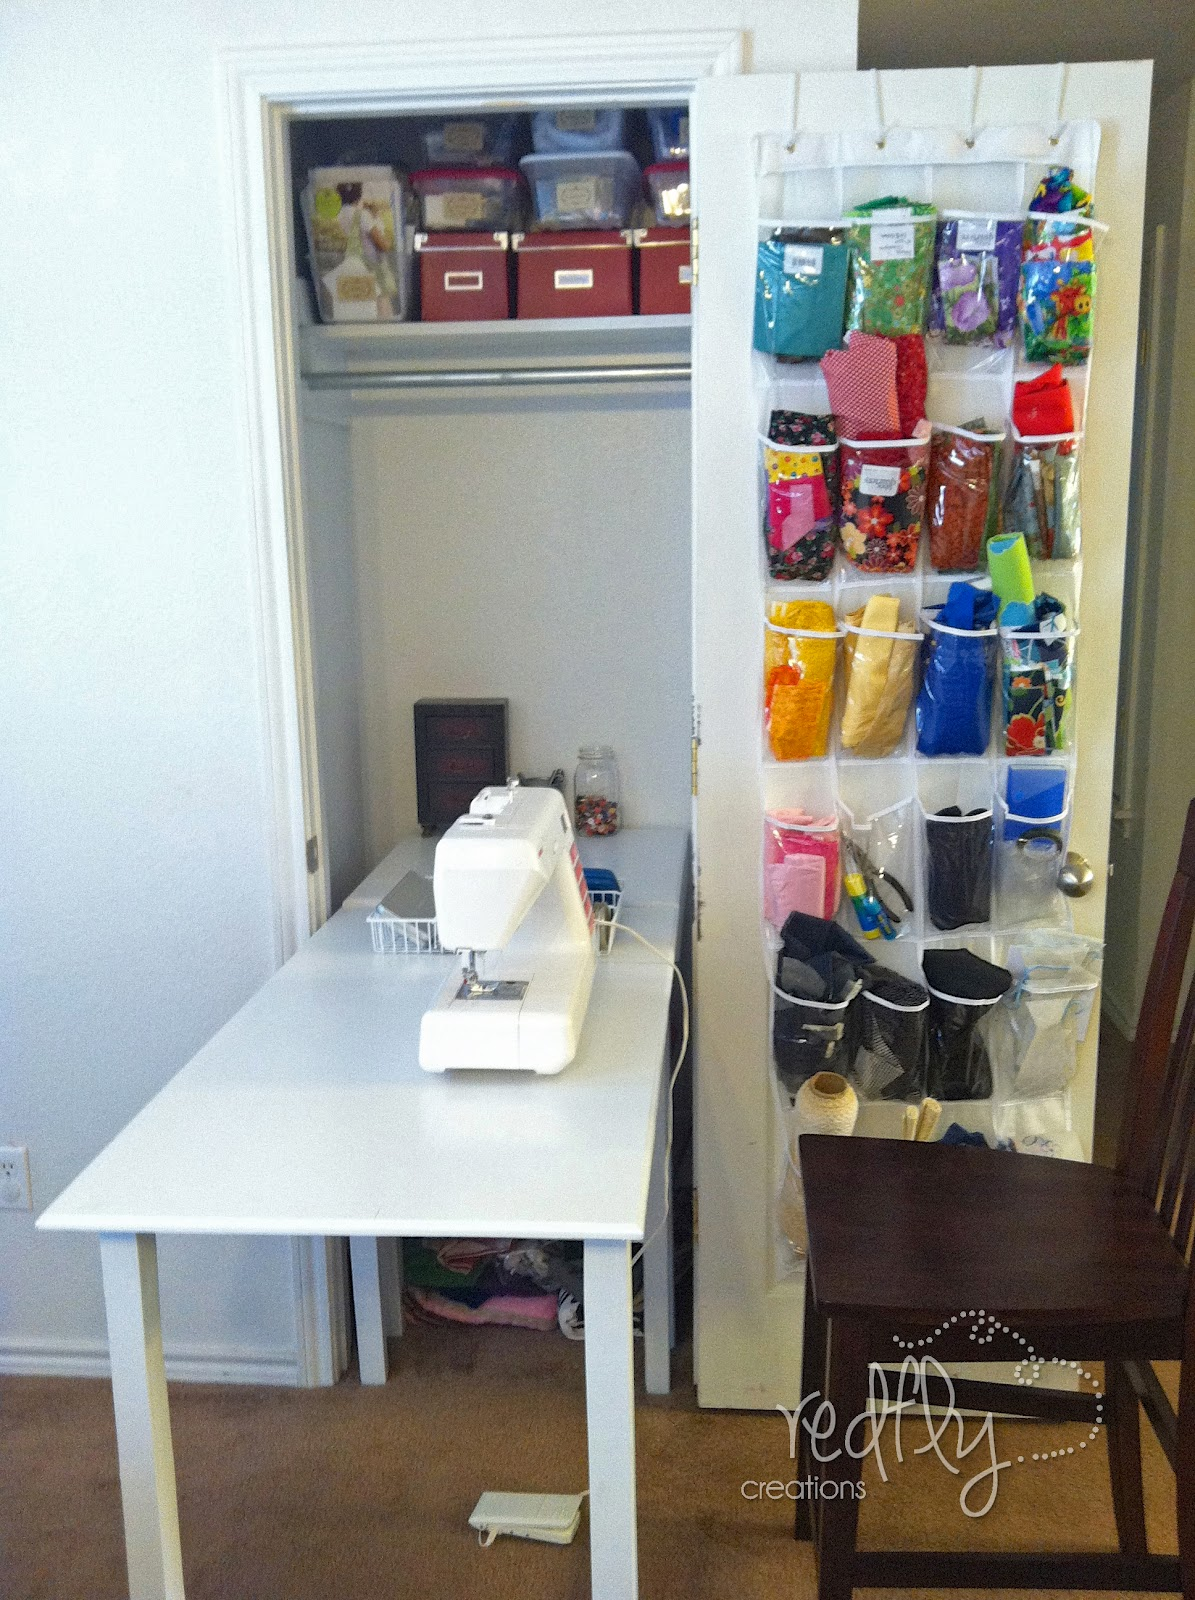 Redfly Creations Sewing Table Folds Up Into Closet